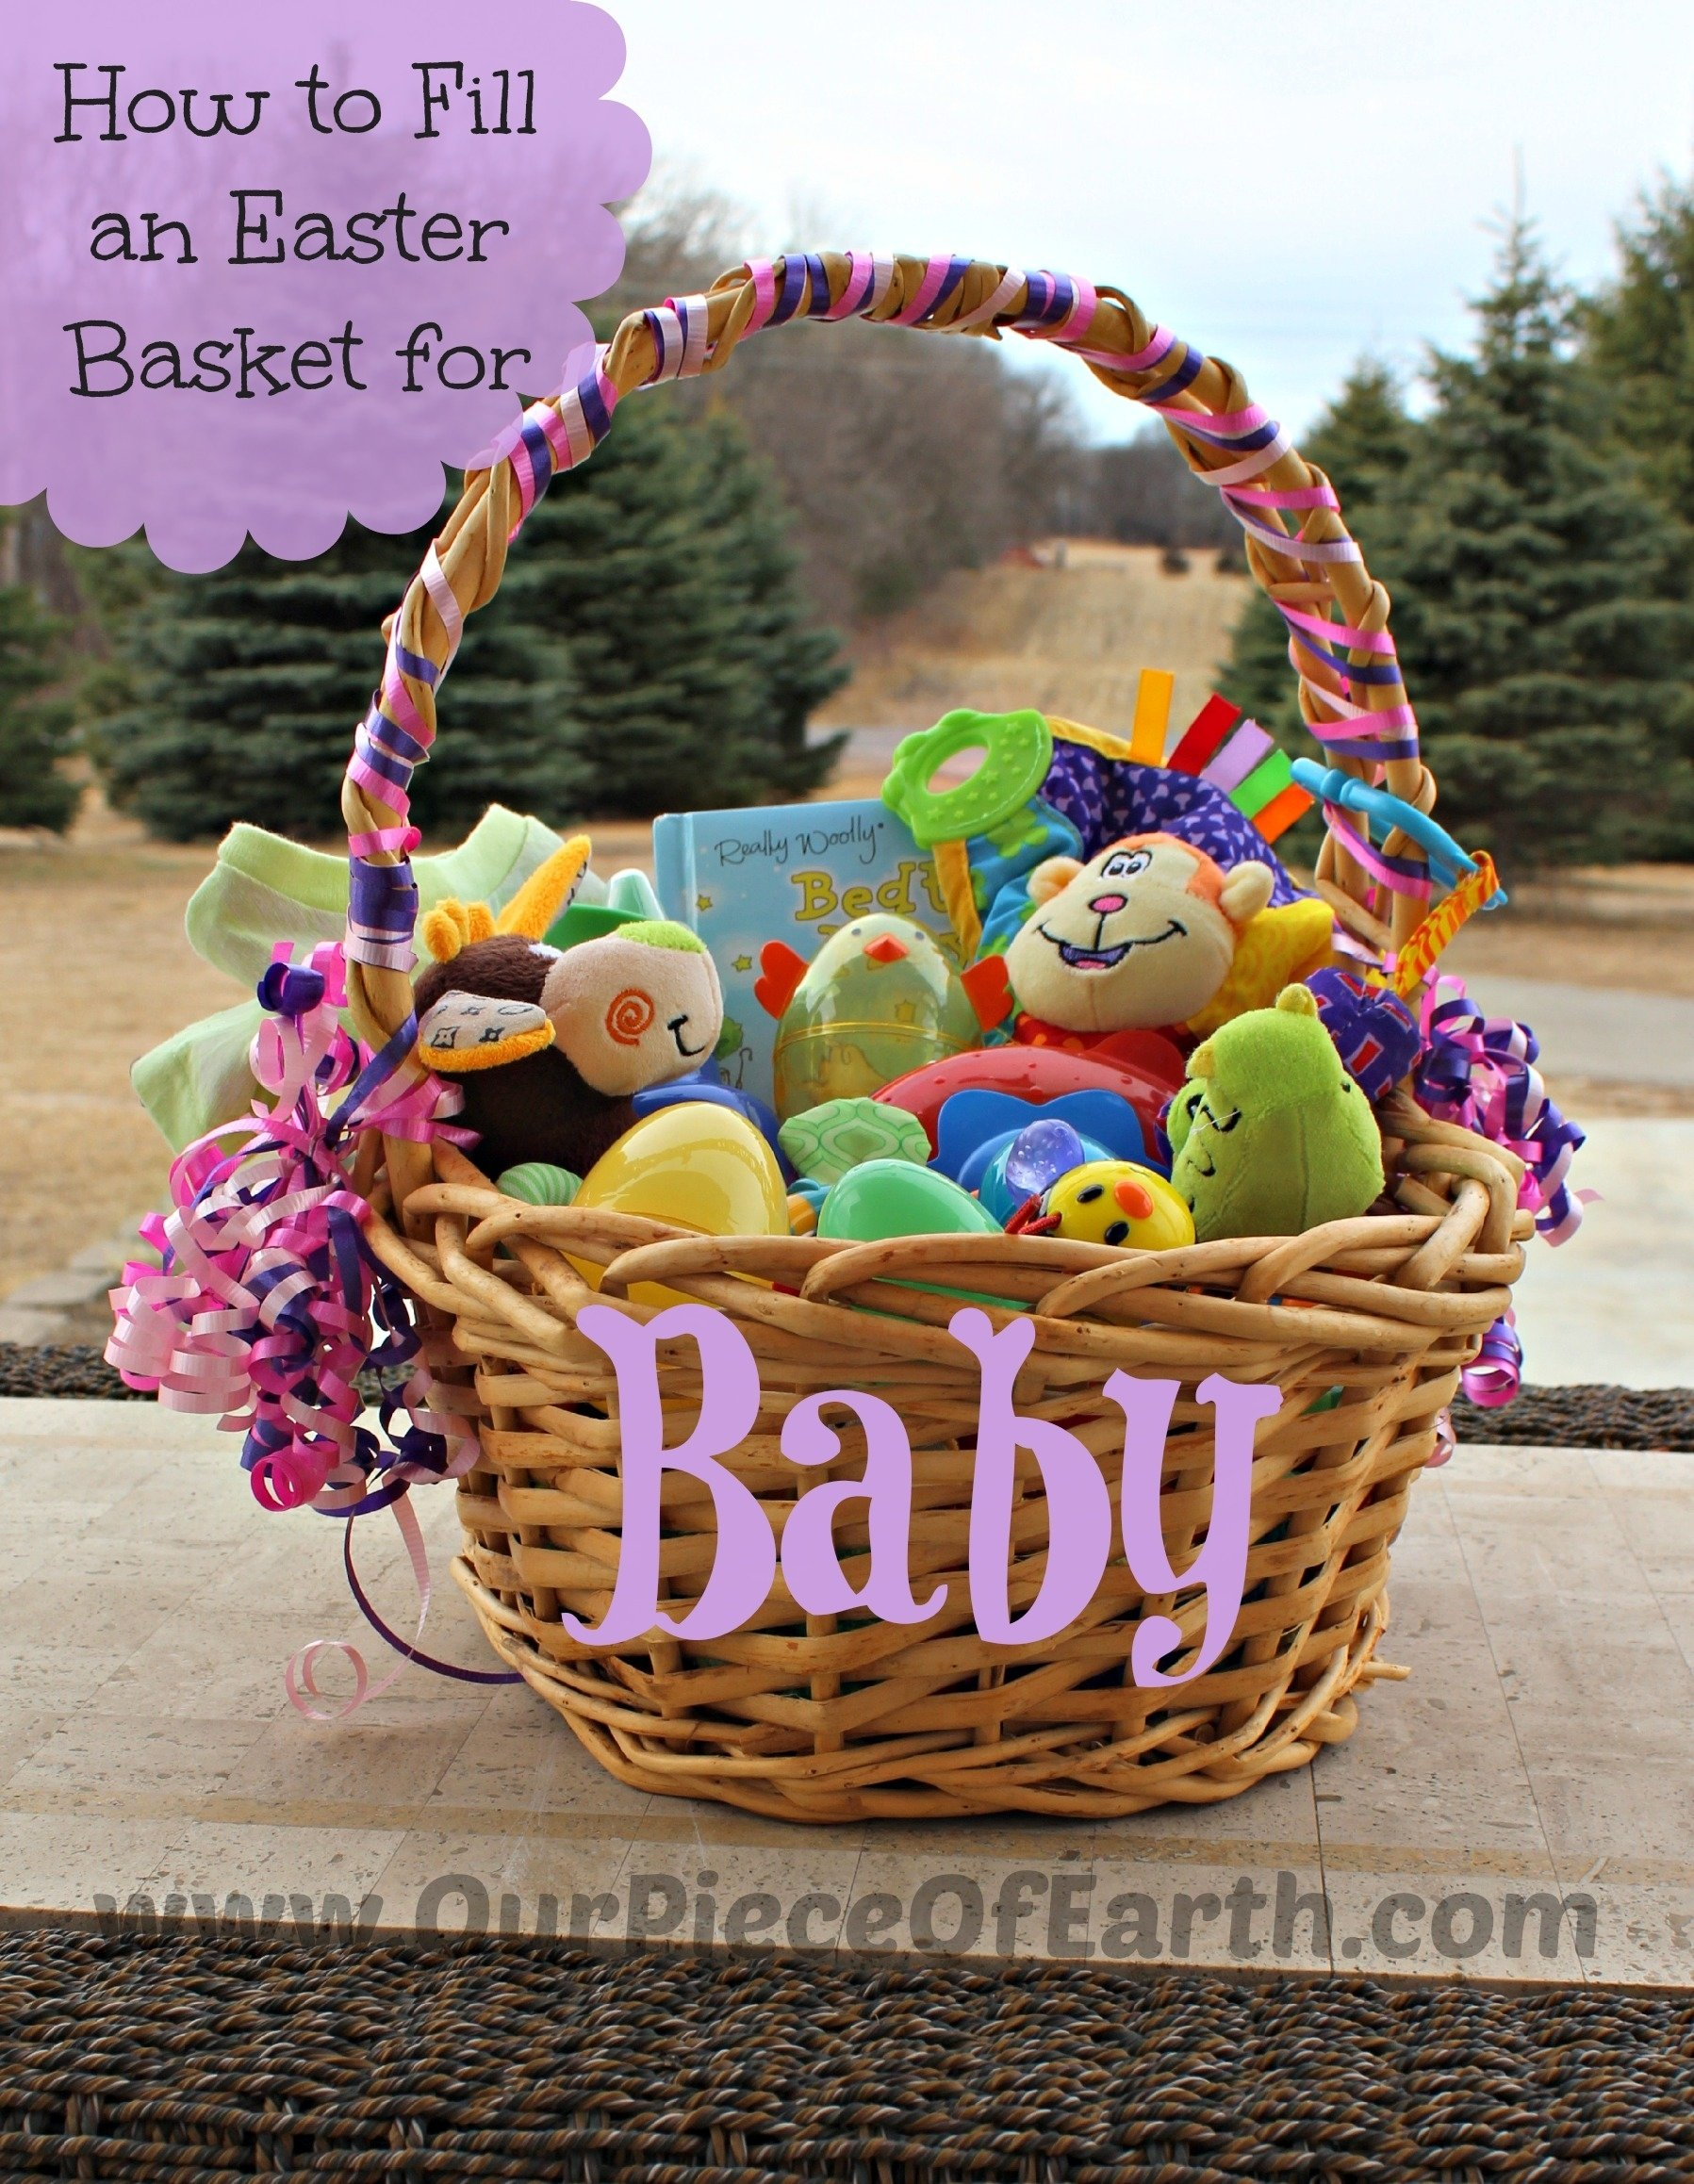 a sneak peek at henry's easter basket + fun and easy ideas for